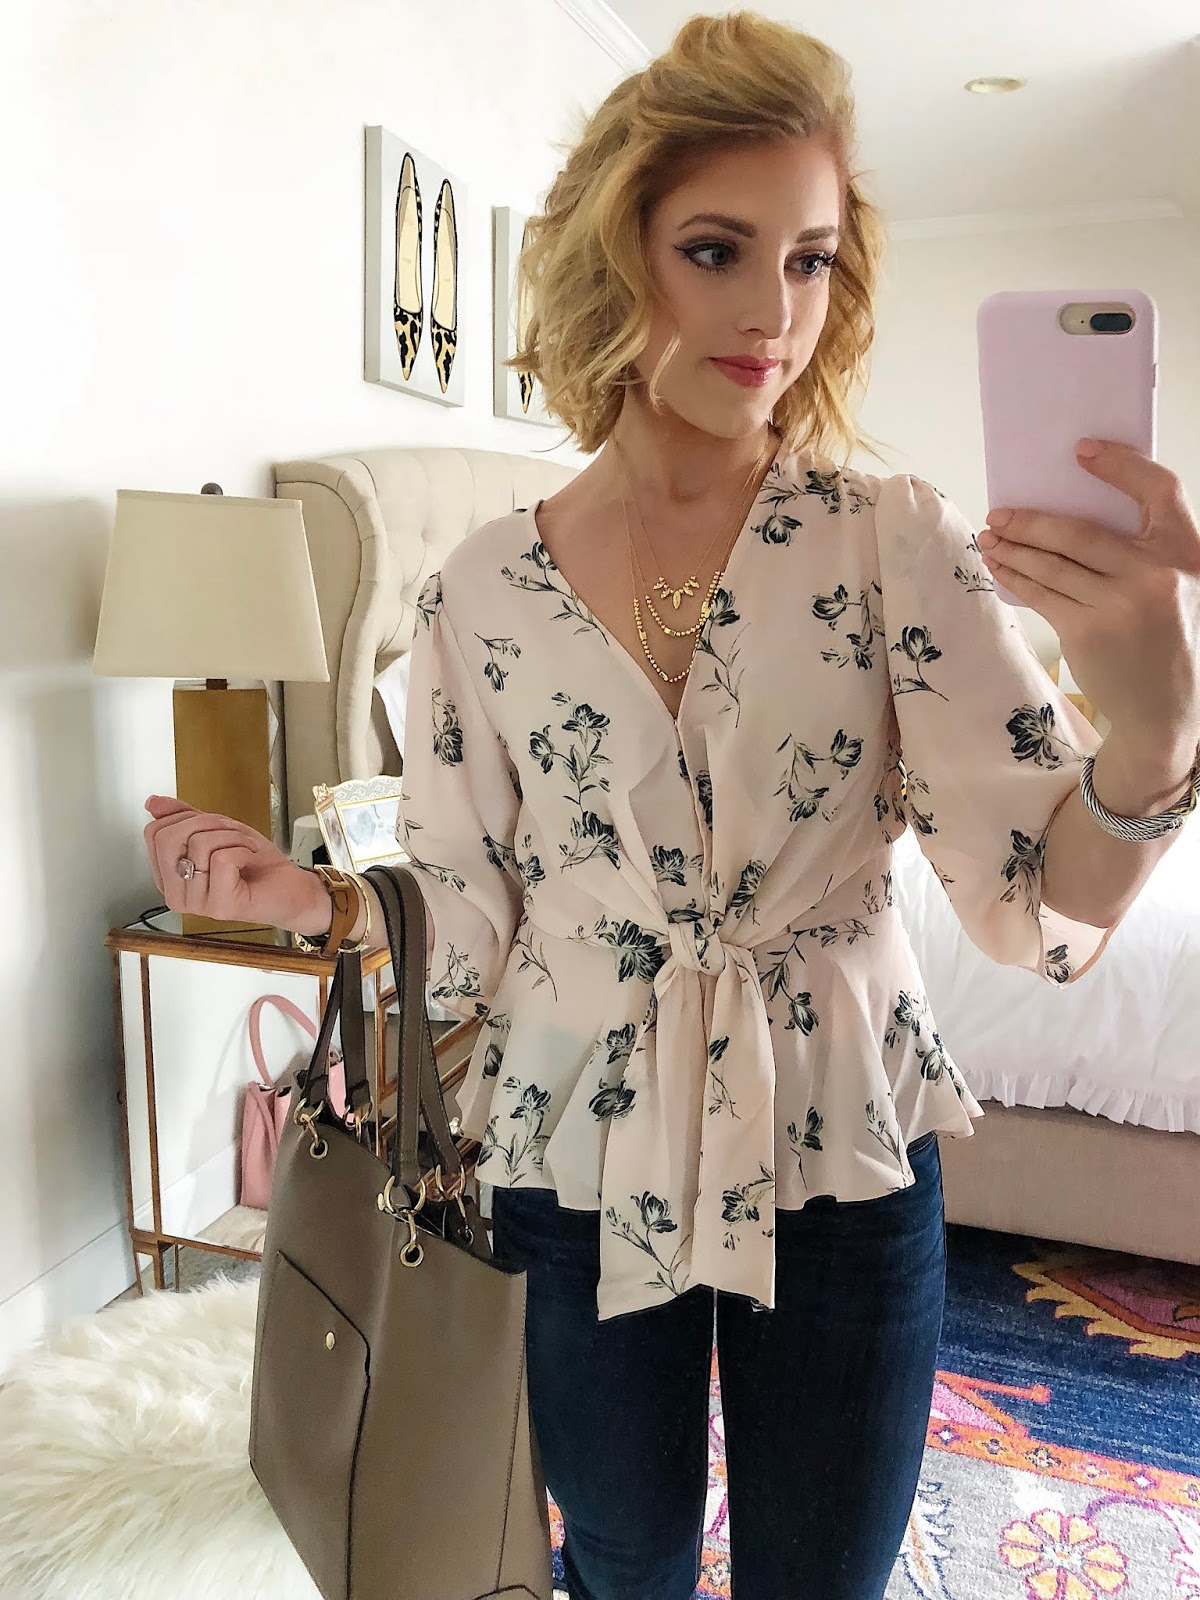 Nordstrom Anniversary Sale Public Access: My Top Ten NSale Looks - Something Delightful Blog